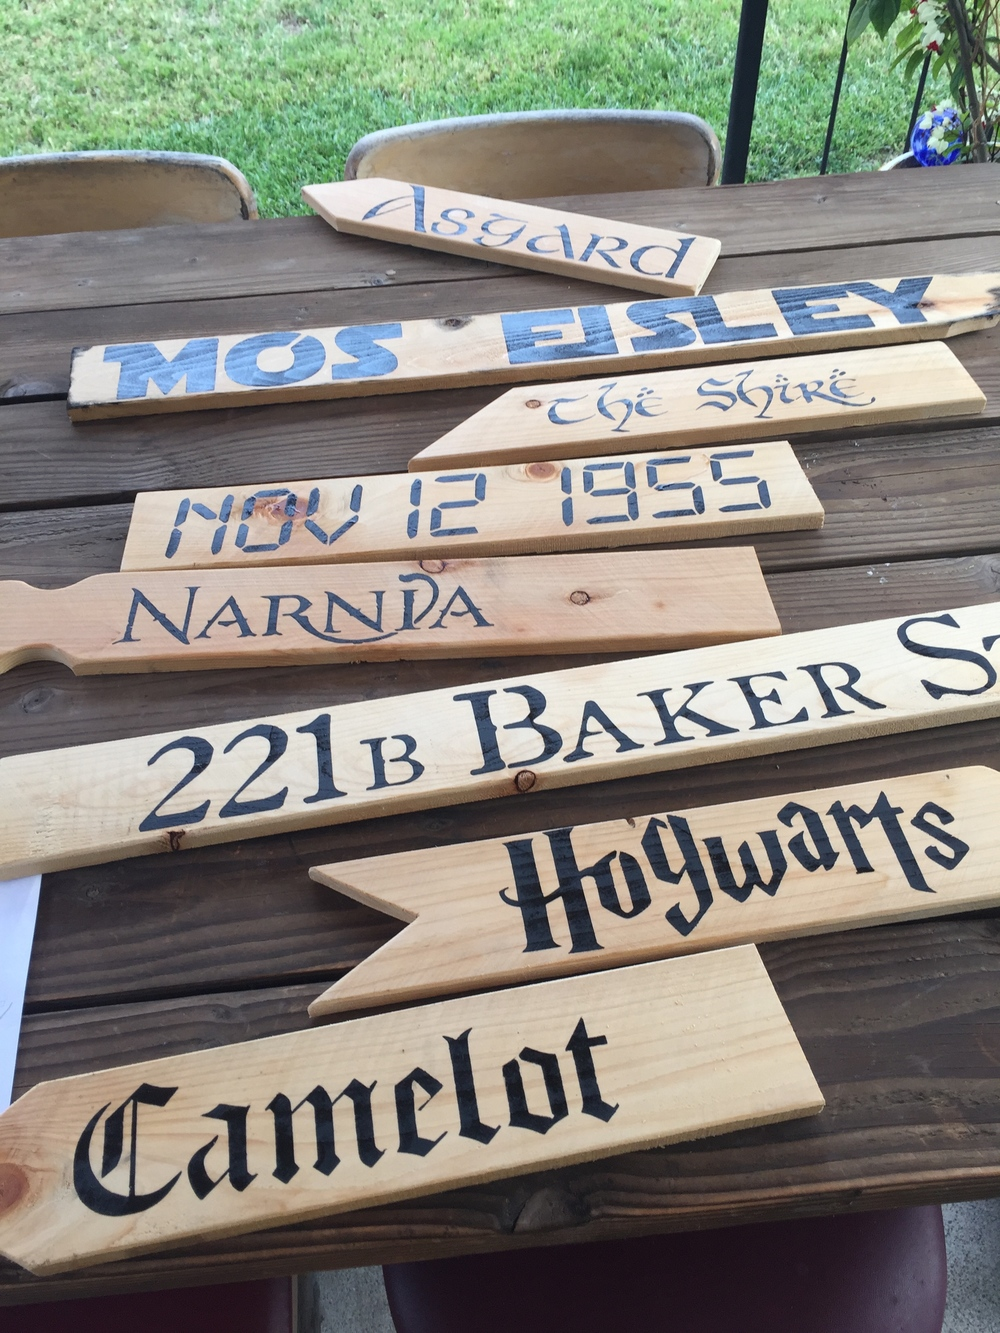 My Big Fat Cuban Family - DIY instructions to make your own nerdy destinations sign